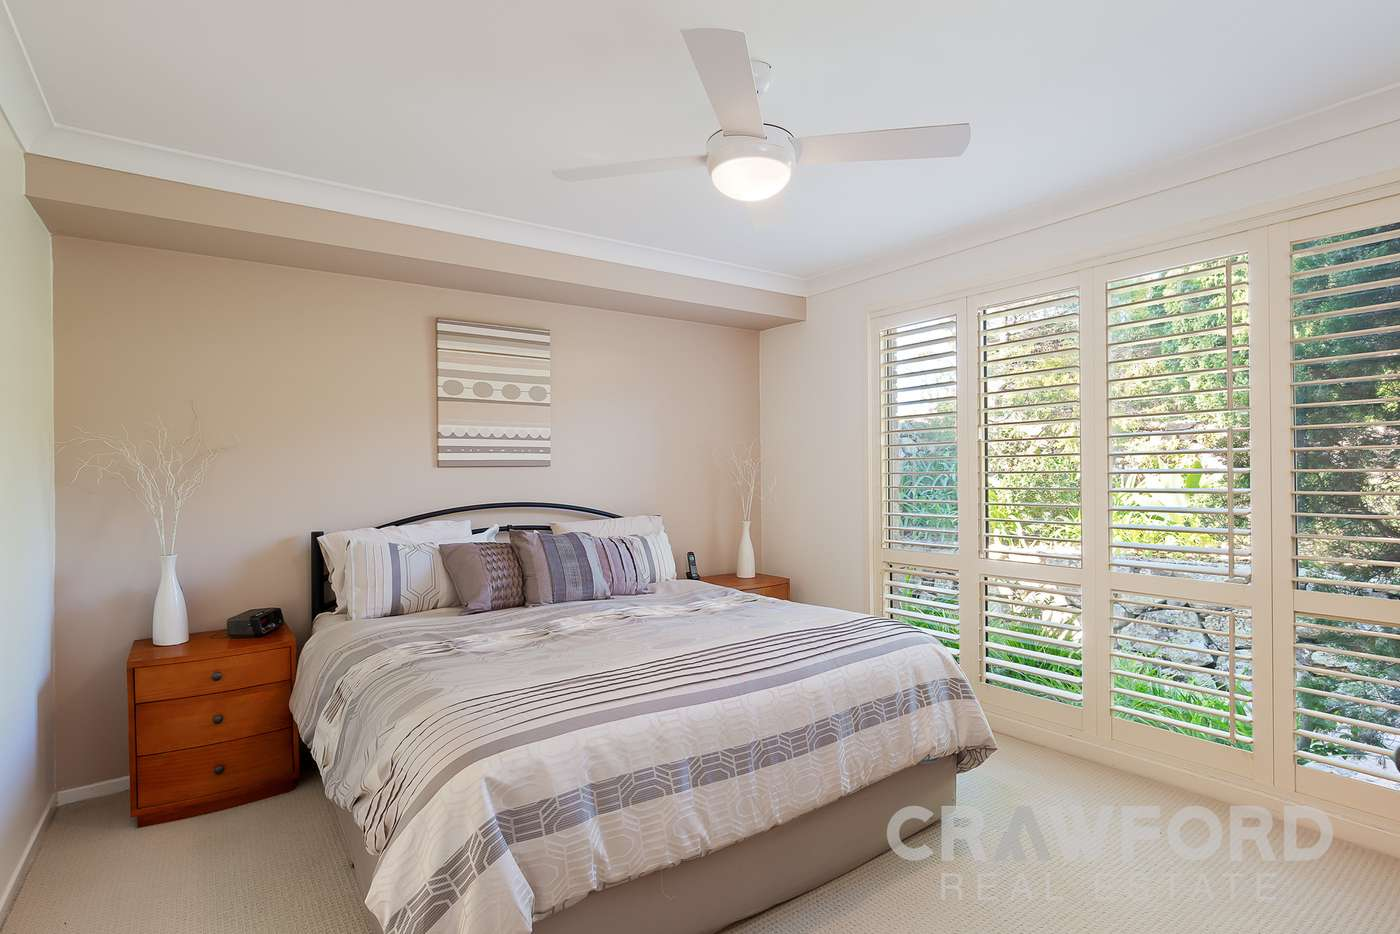 Sixth view of Homely house listing, 69 Birchgrove Drive, Wallsend NSW 2287